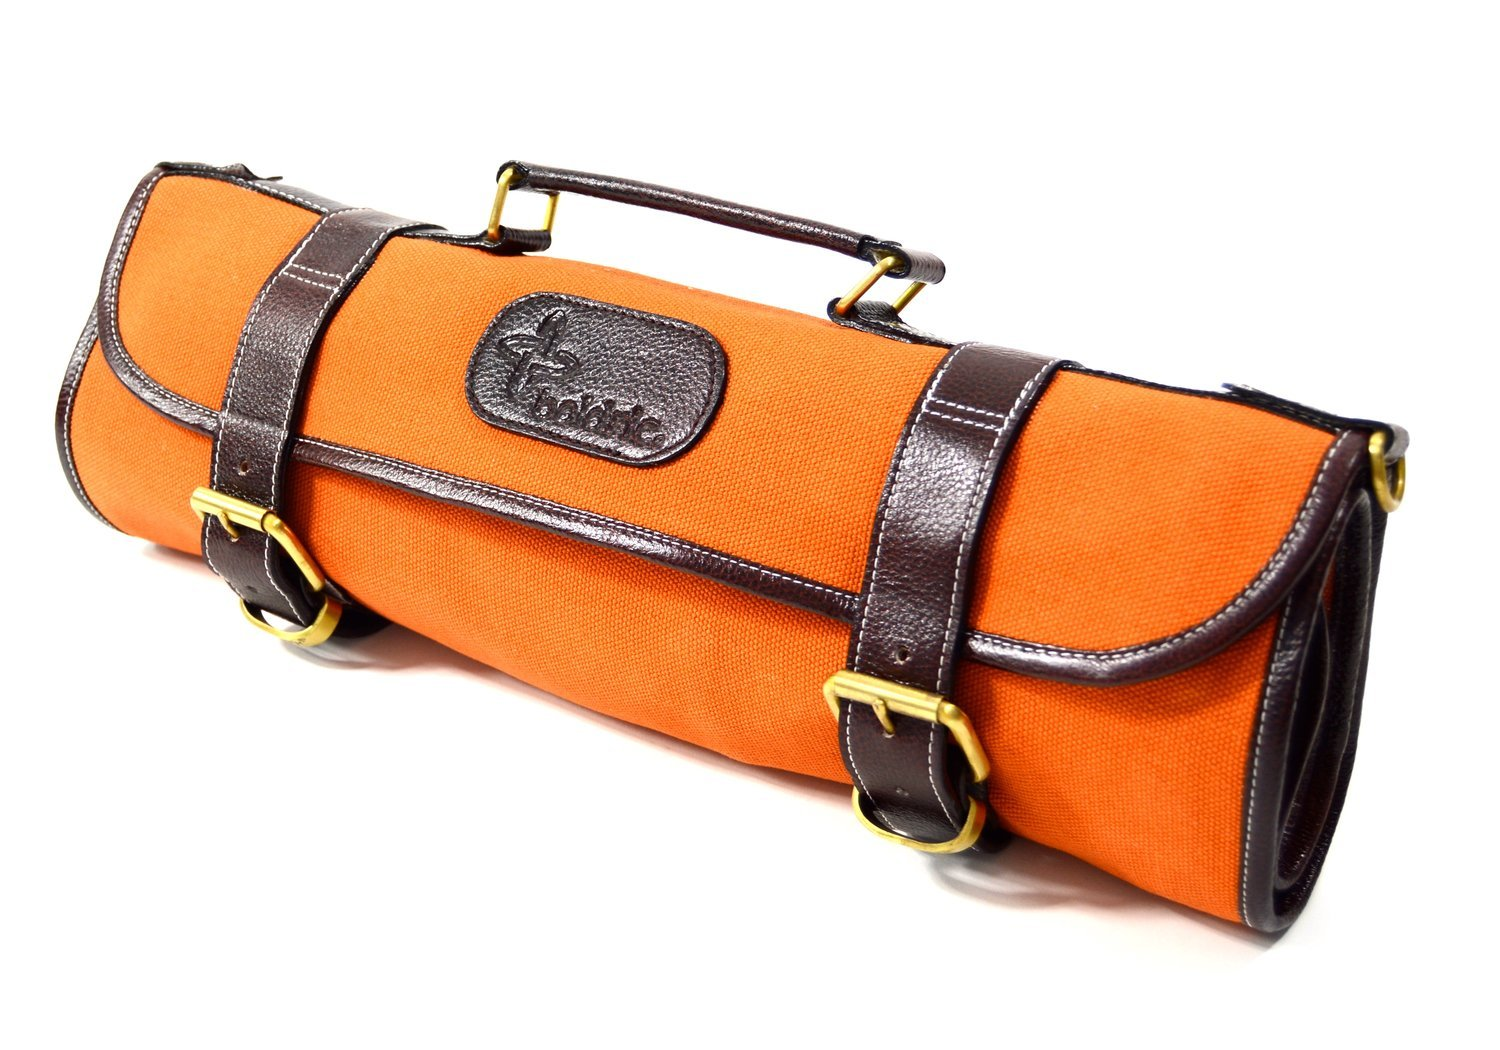 Boldric 9 Pocket Knife Bag, Roll Up Canvas with Handle and Shoulder Strap, Top Quality Portable Chef Knives Case Storage Bag, 18-inch (Orange)